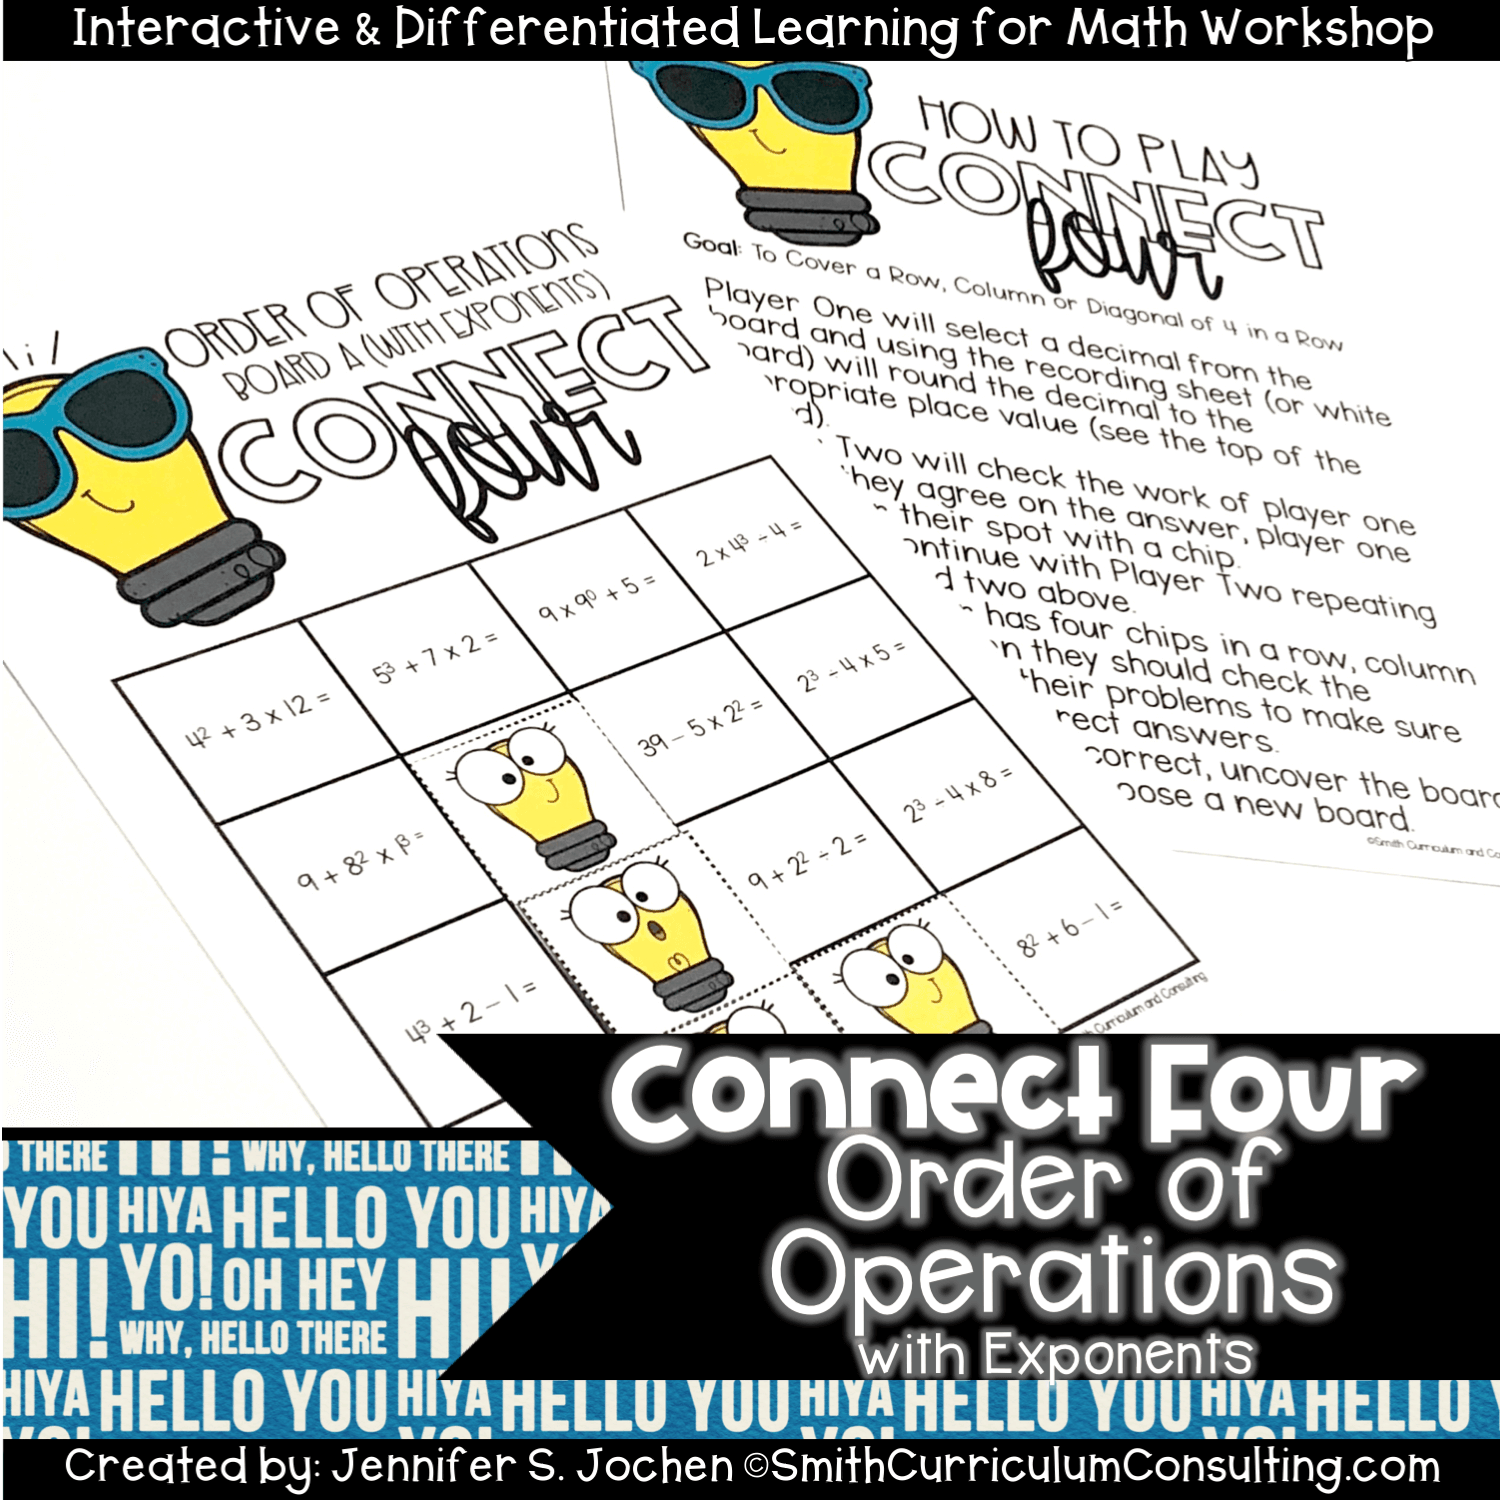 Connect Four Order Of Operations With Exponents Game